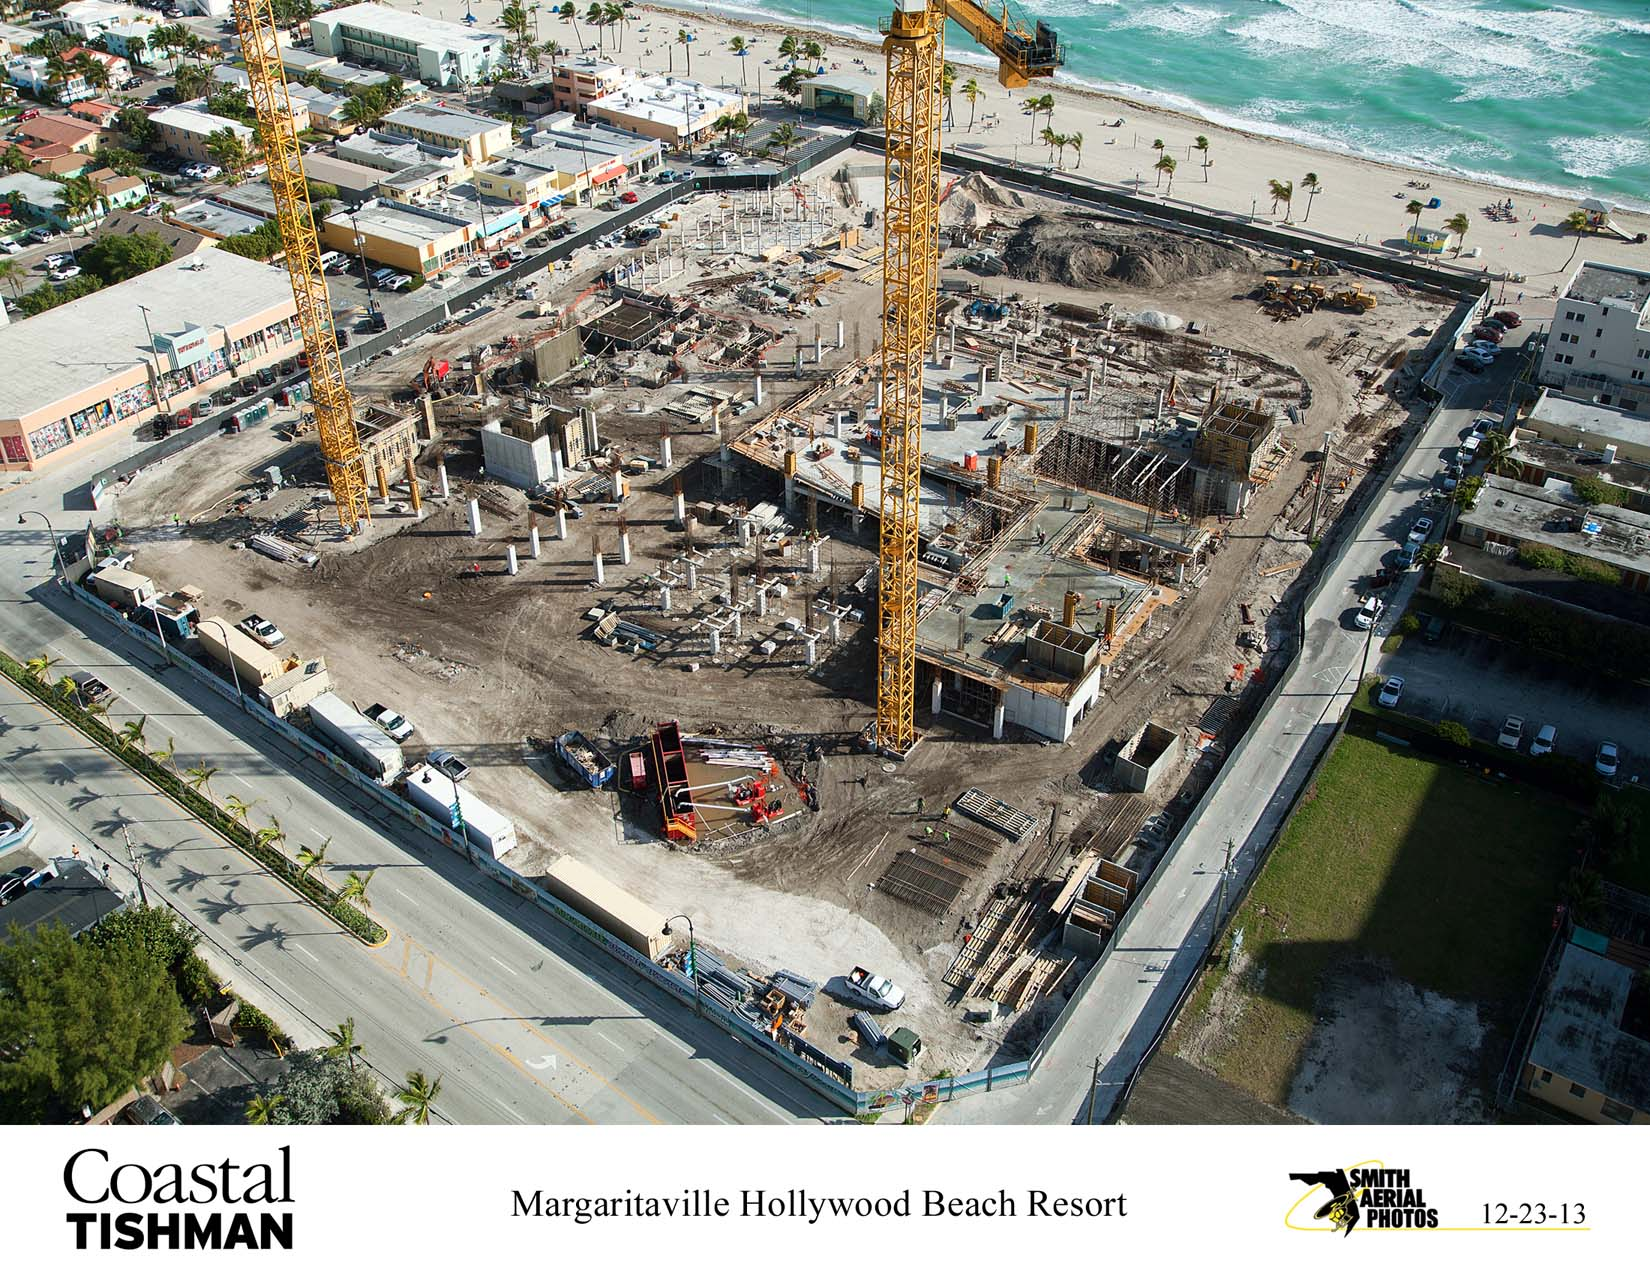 Margaritaville Construction Dec 13 - 2